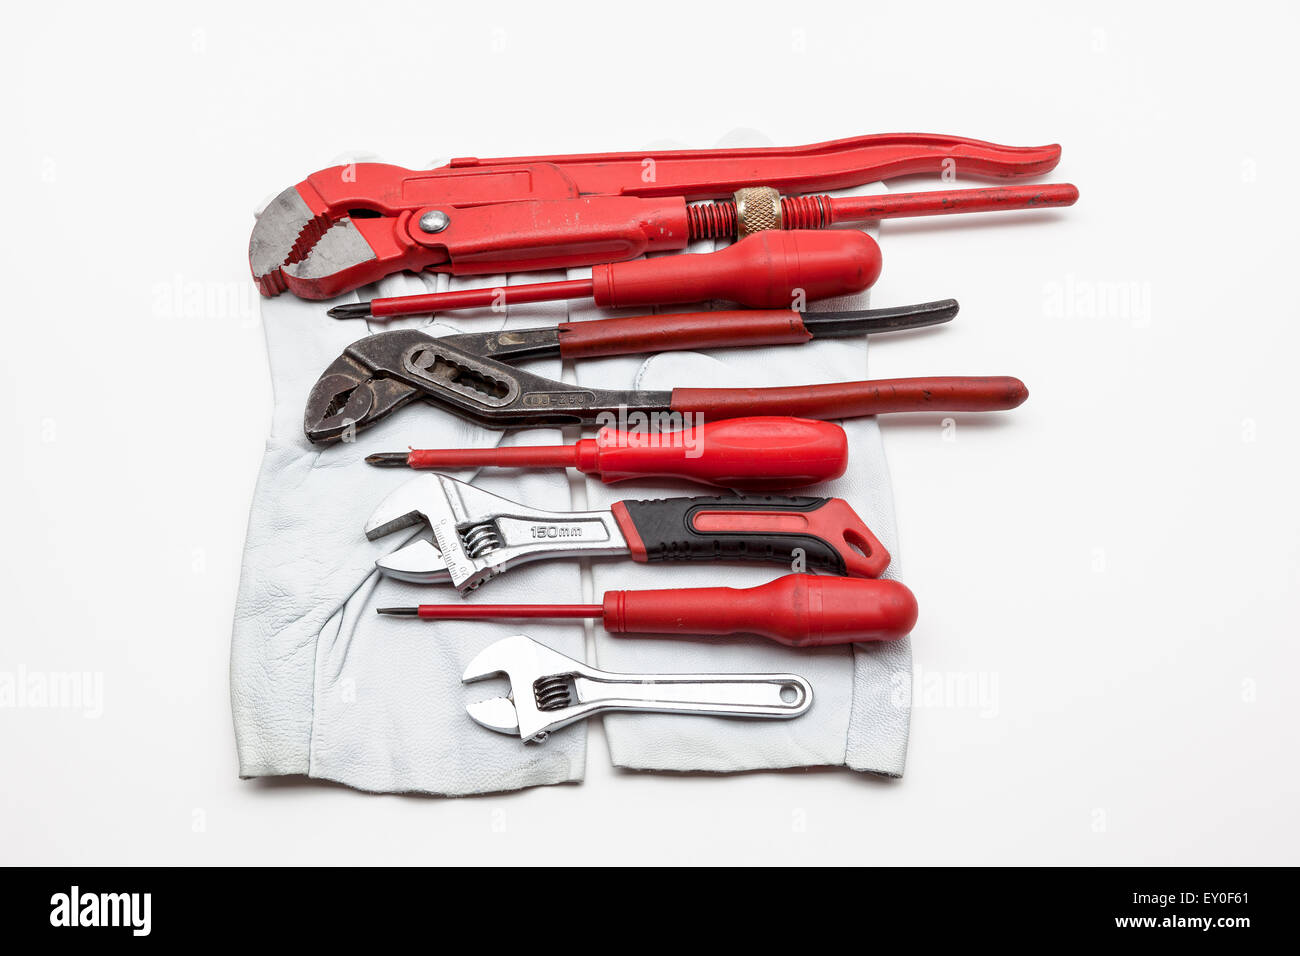 red wrench Isolated on white background whit work gloves Stock Photo